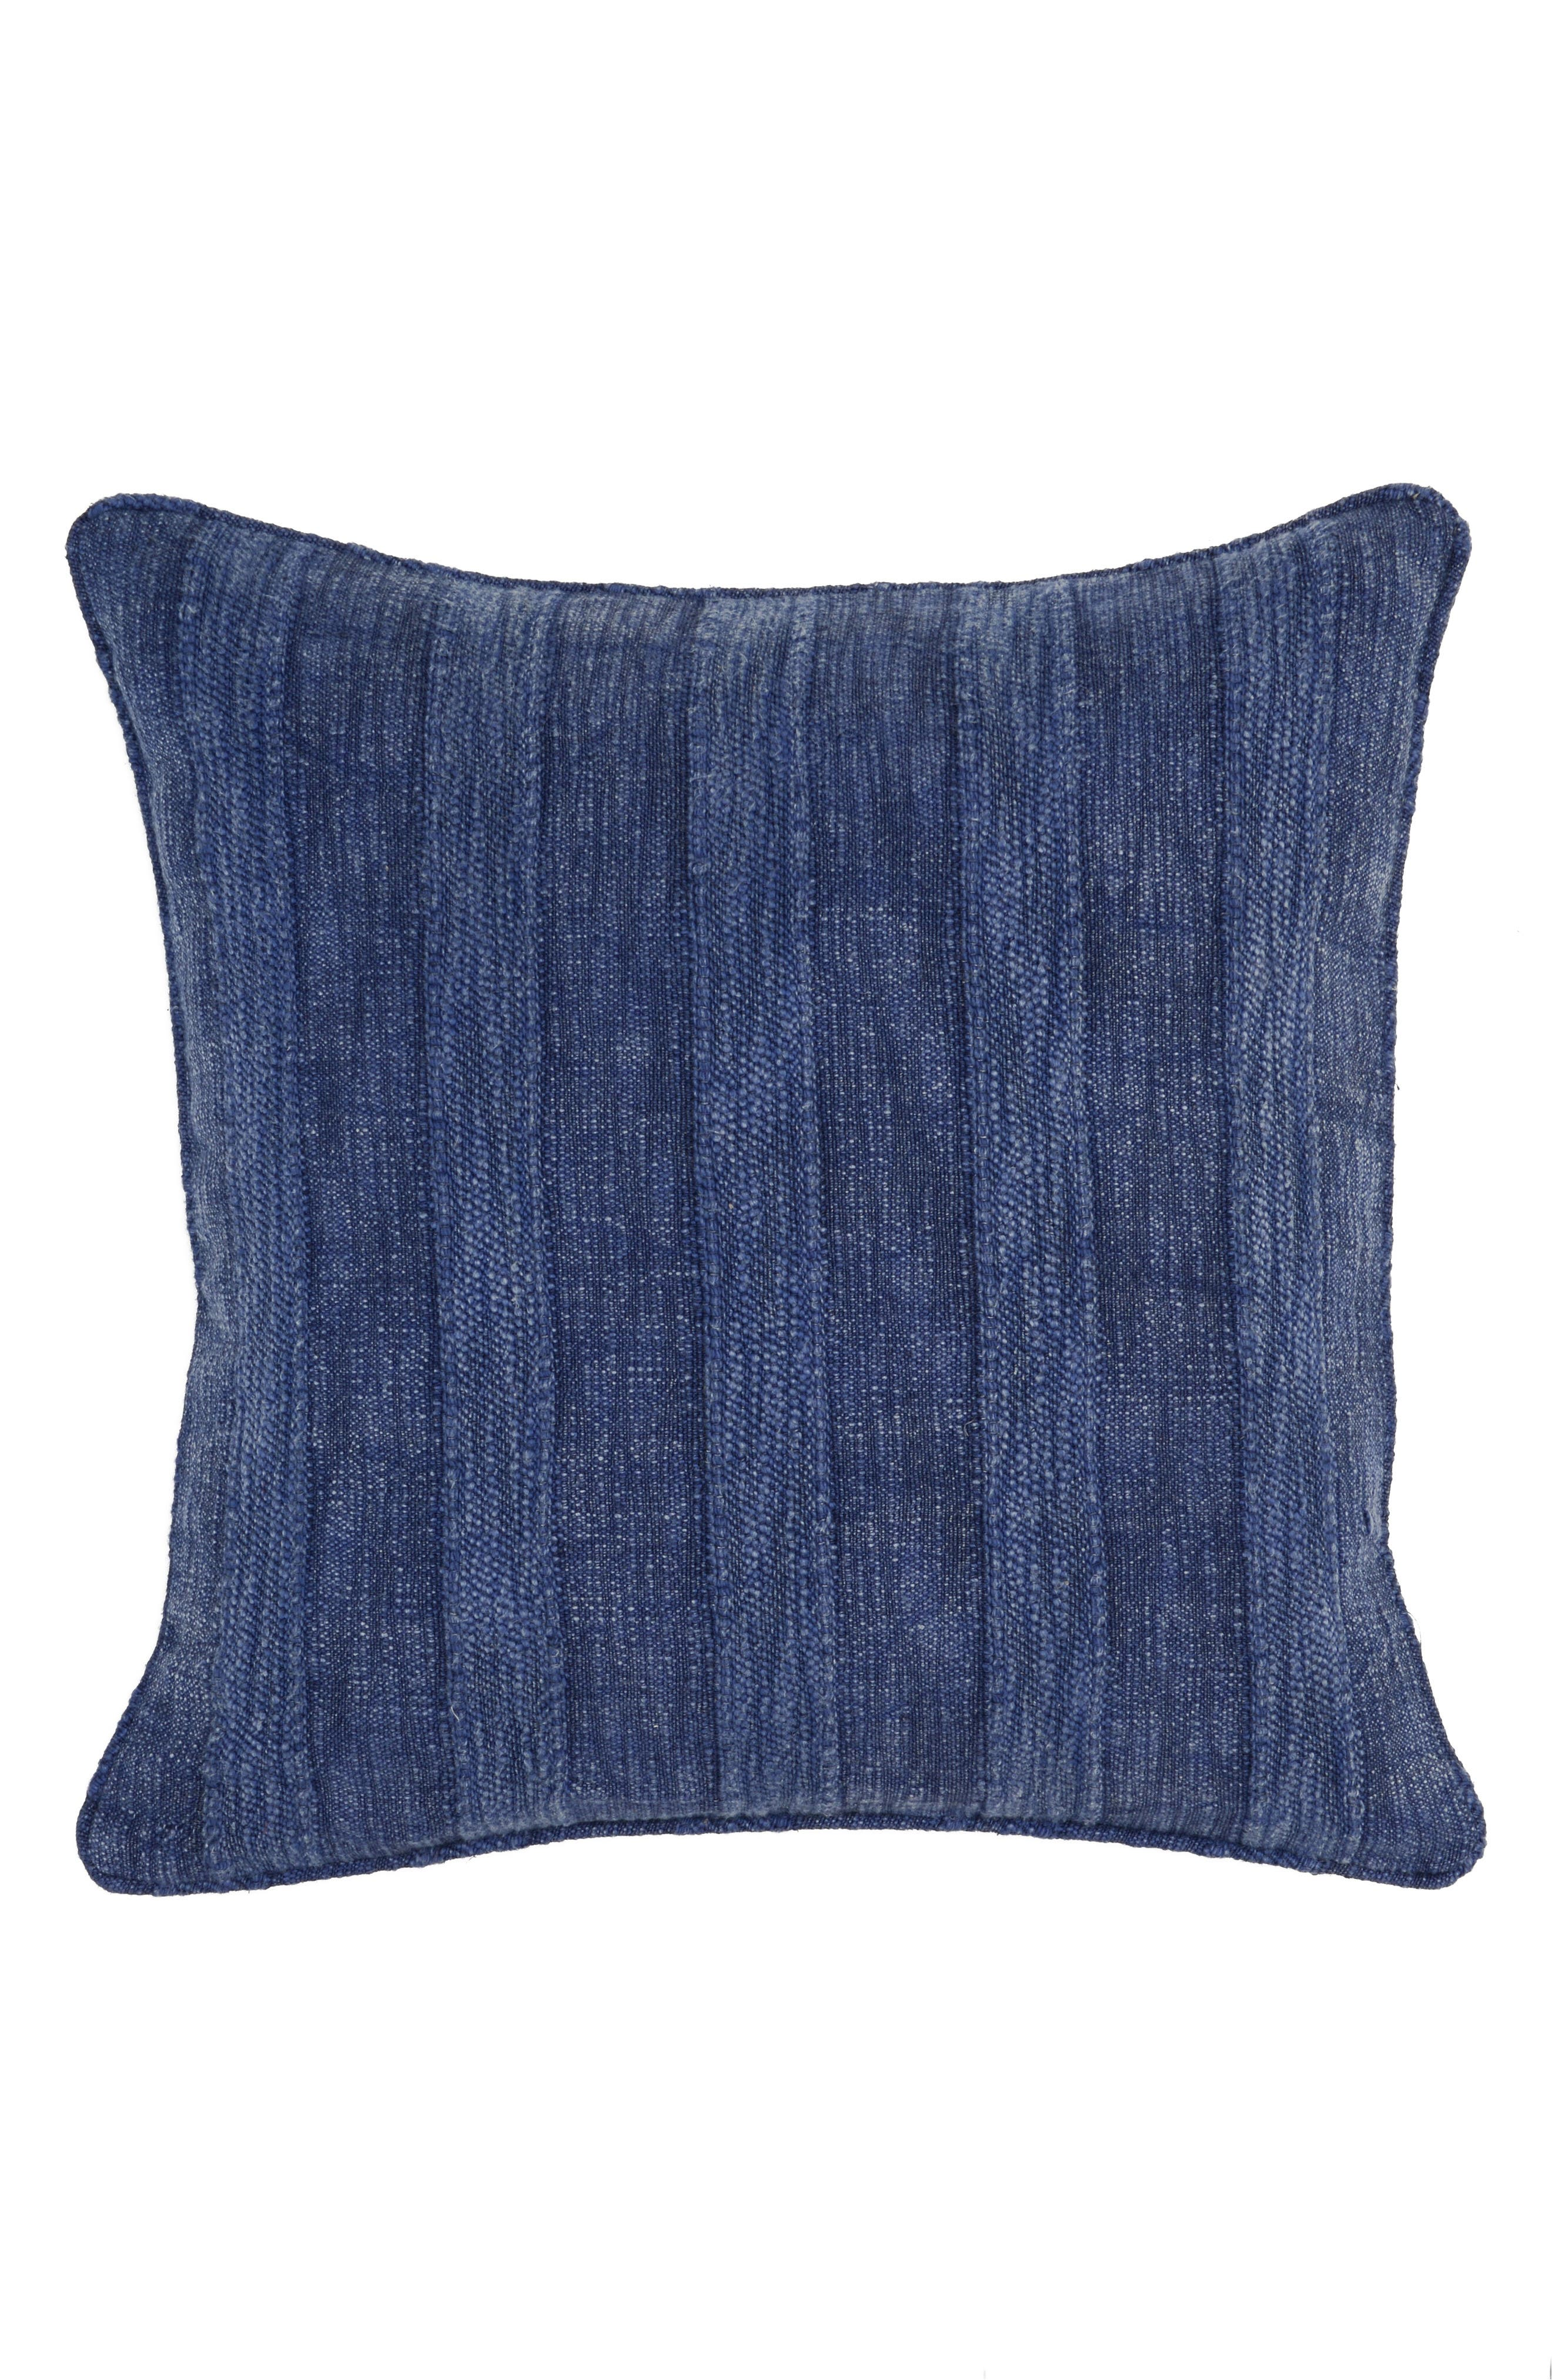 Main Image - Villa Home Collection Heirloom Pillow